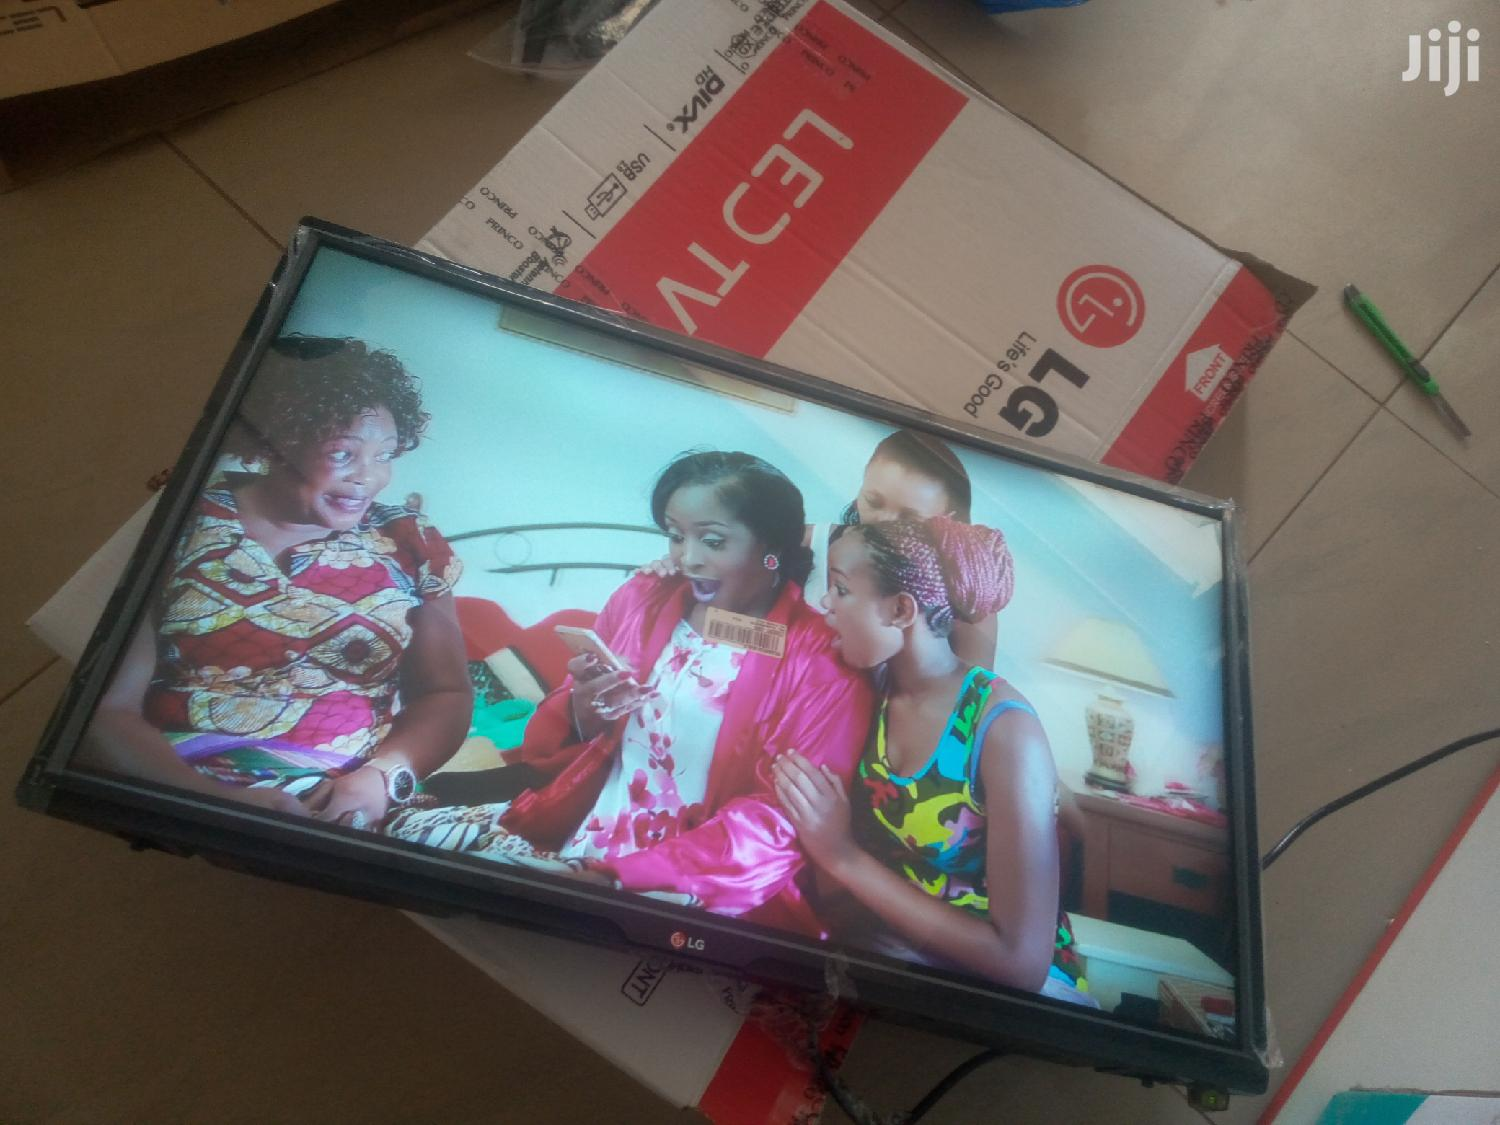 LG Led Digital TV 32 Inches